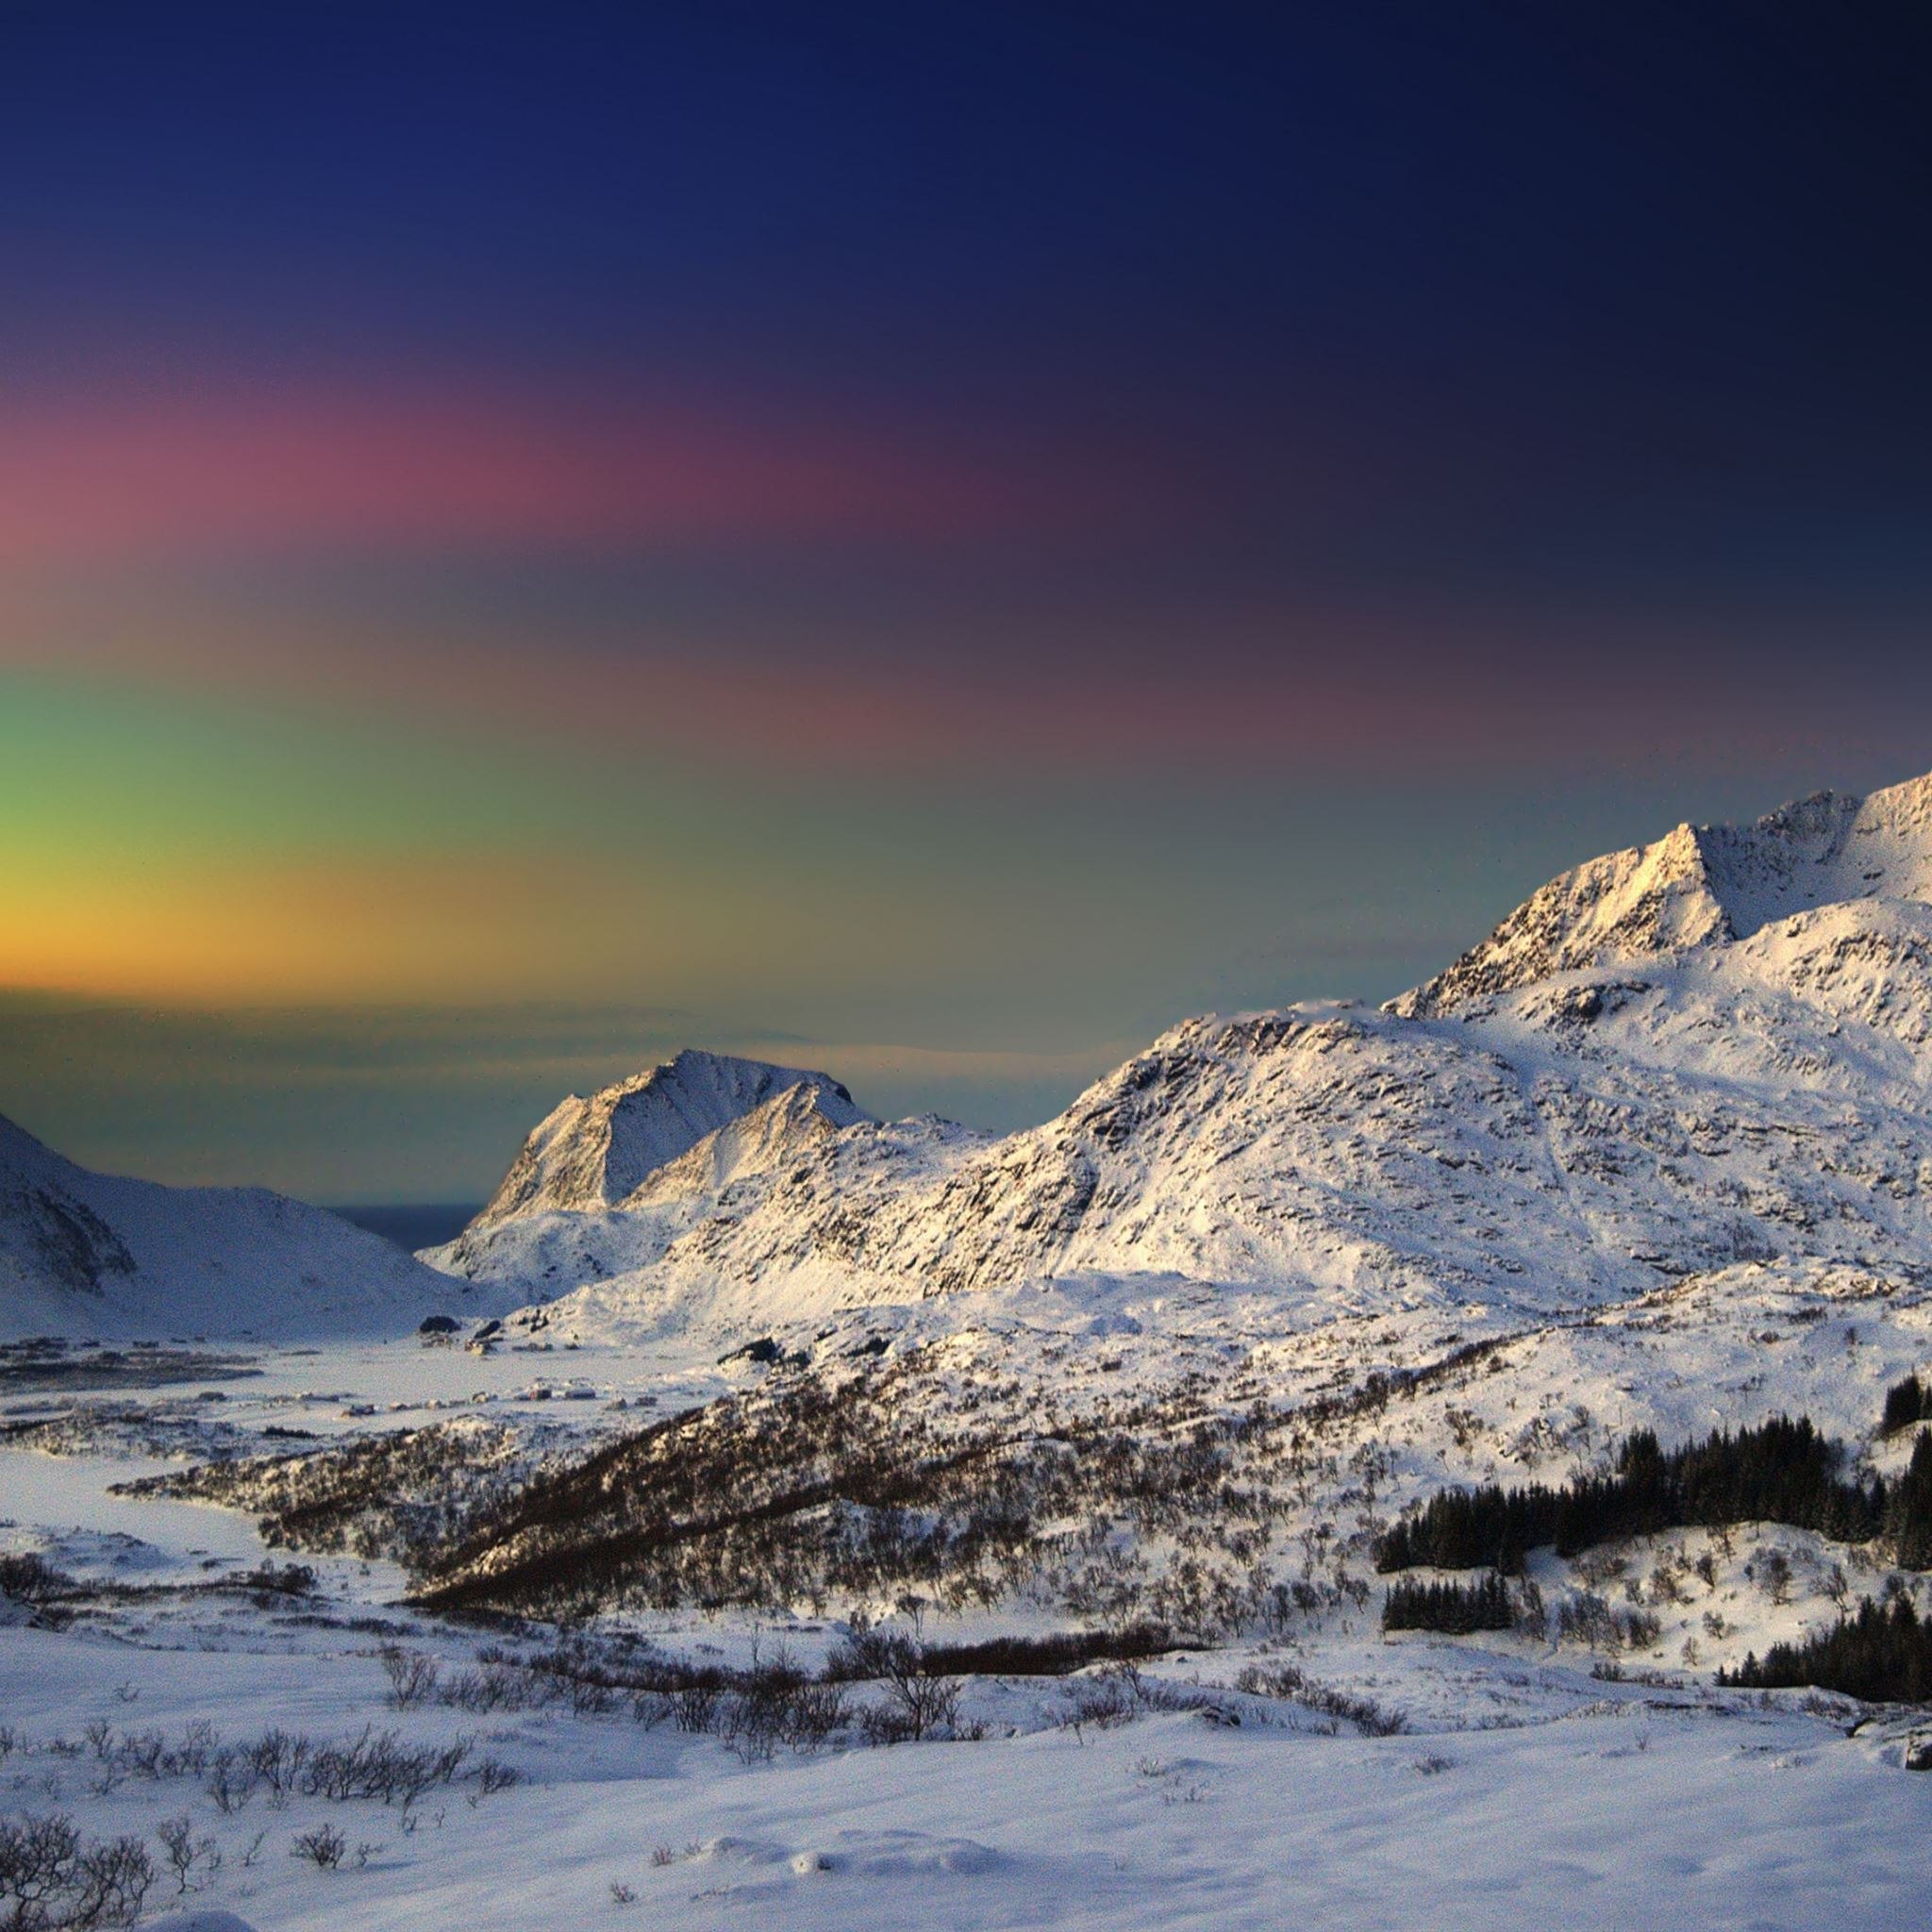 Winter Morning In The Mountains Ipad Air Wallpapers Free Download